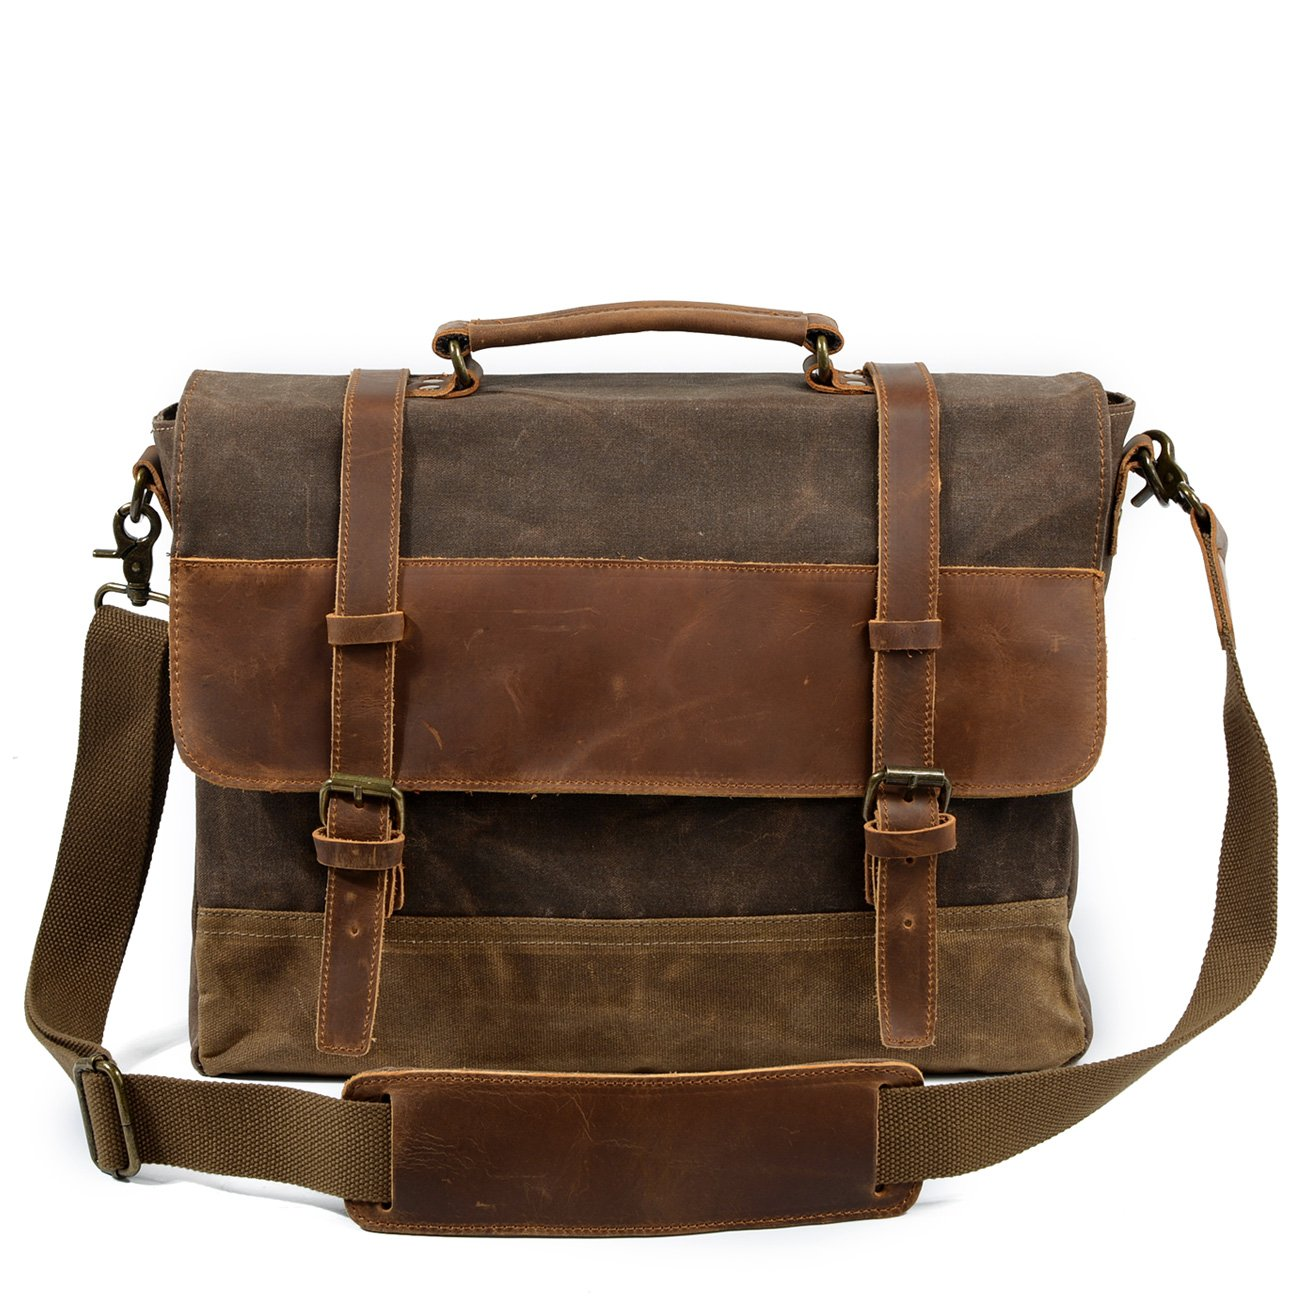 Mens Vintage Retro Genuine Leather Messenger Bag Waterproof Canvas Leather Computer Laptop Bag 15 Inch Briefcase Case (Brown) by peacechaos